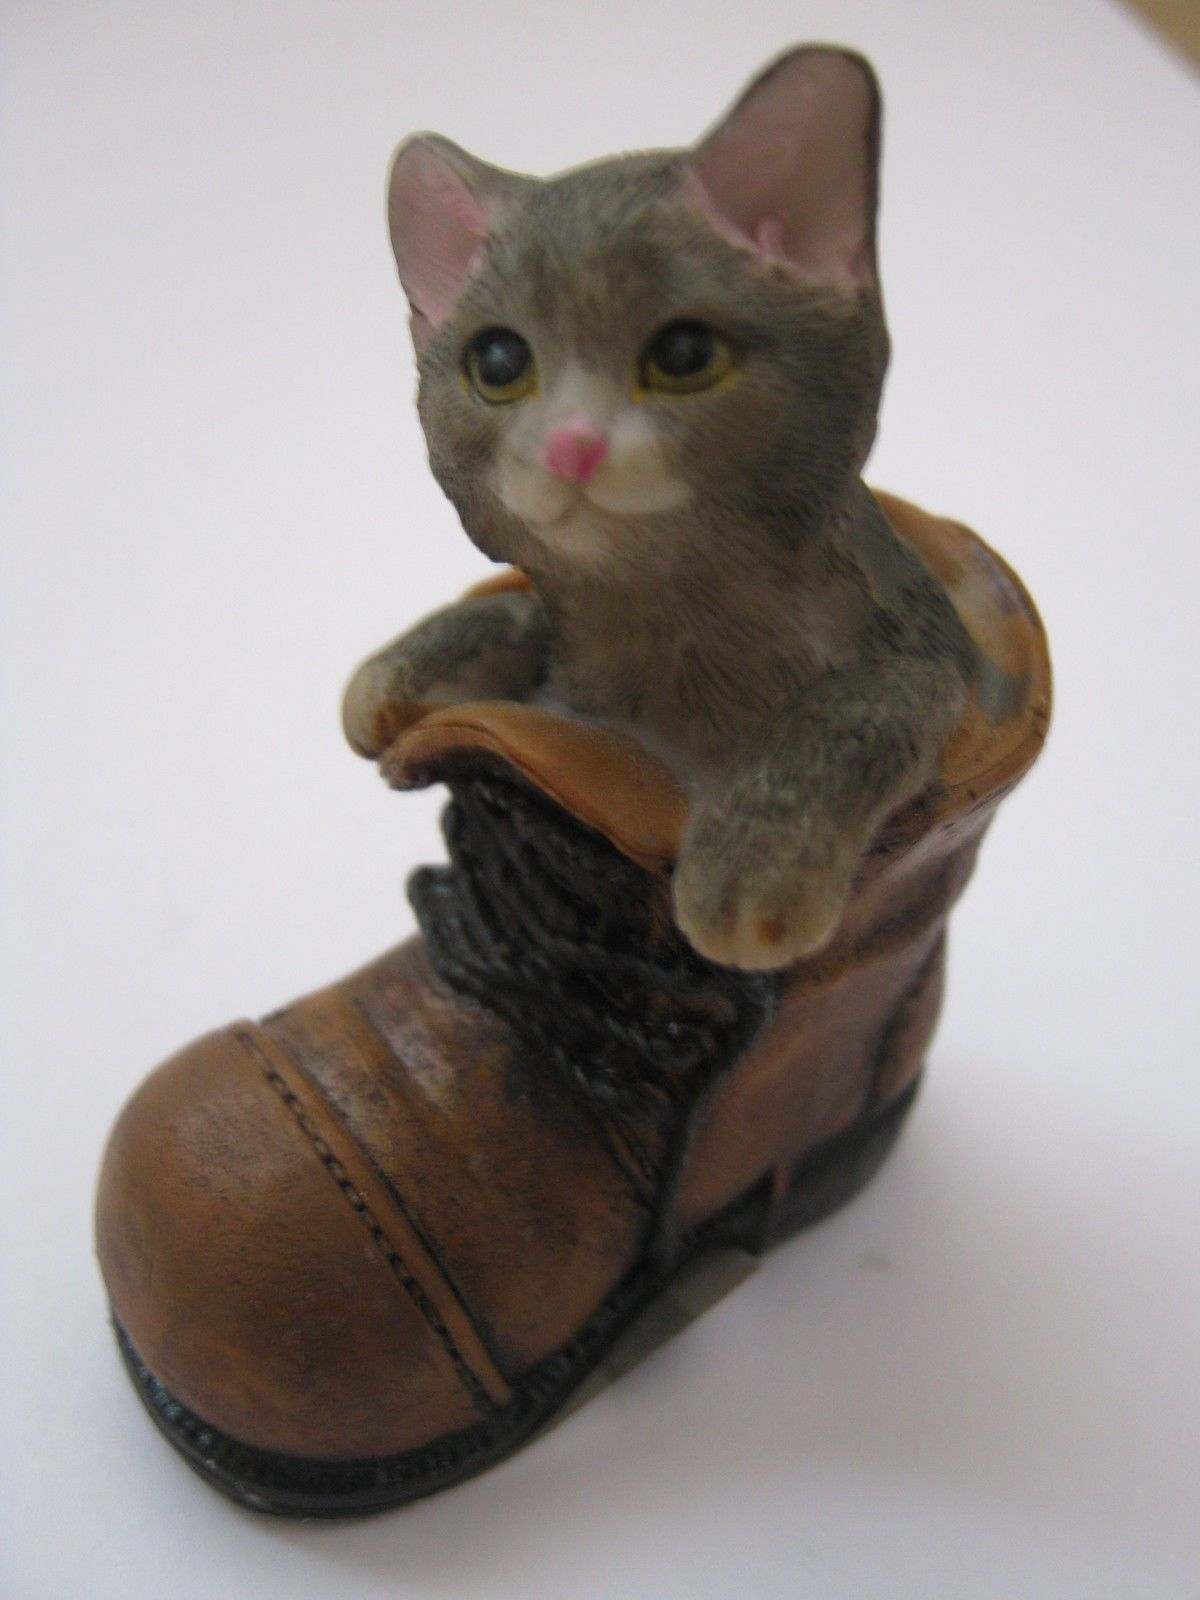 Little Catkitten In A Boot Cute Figurine Ginger, Black &